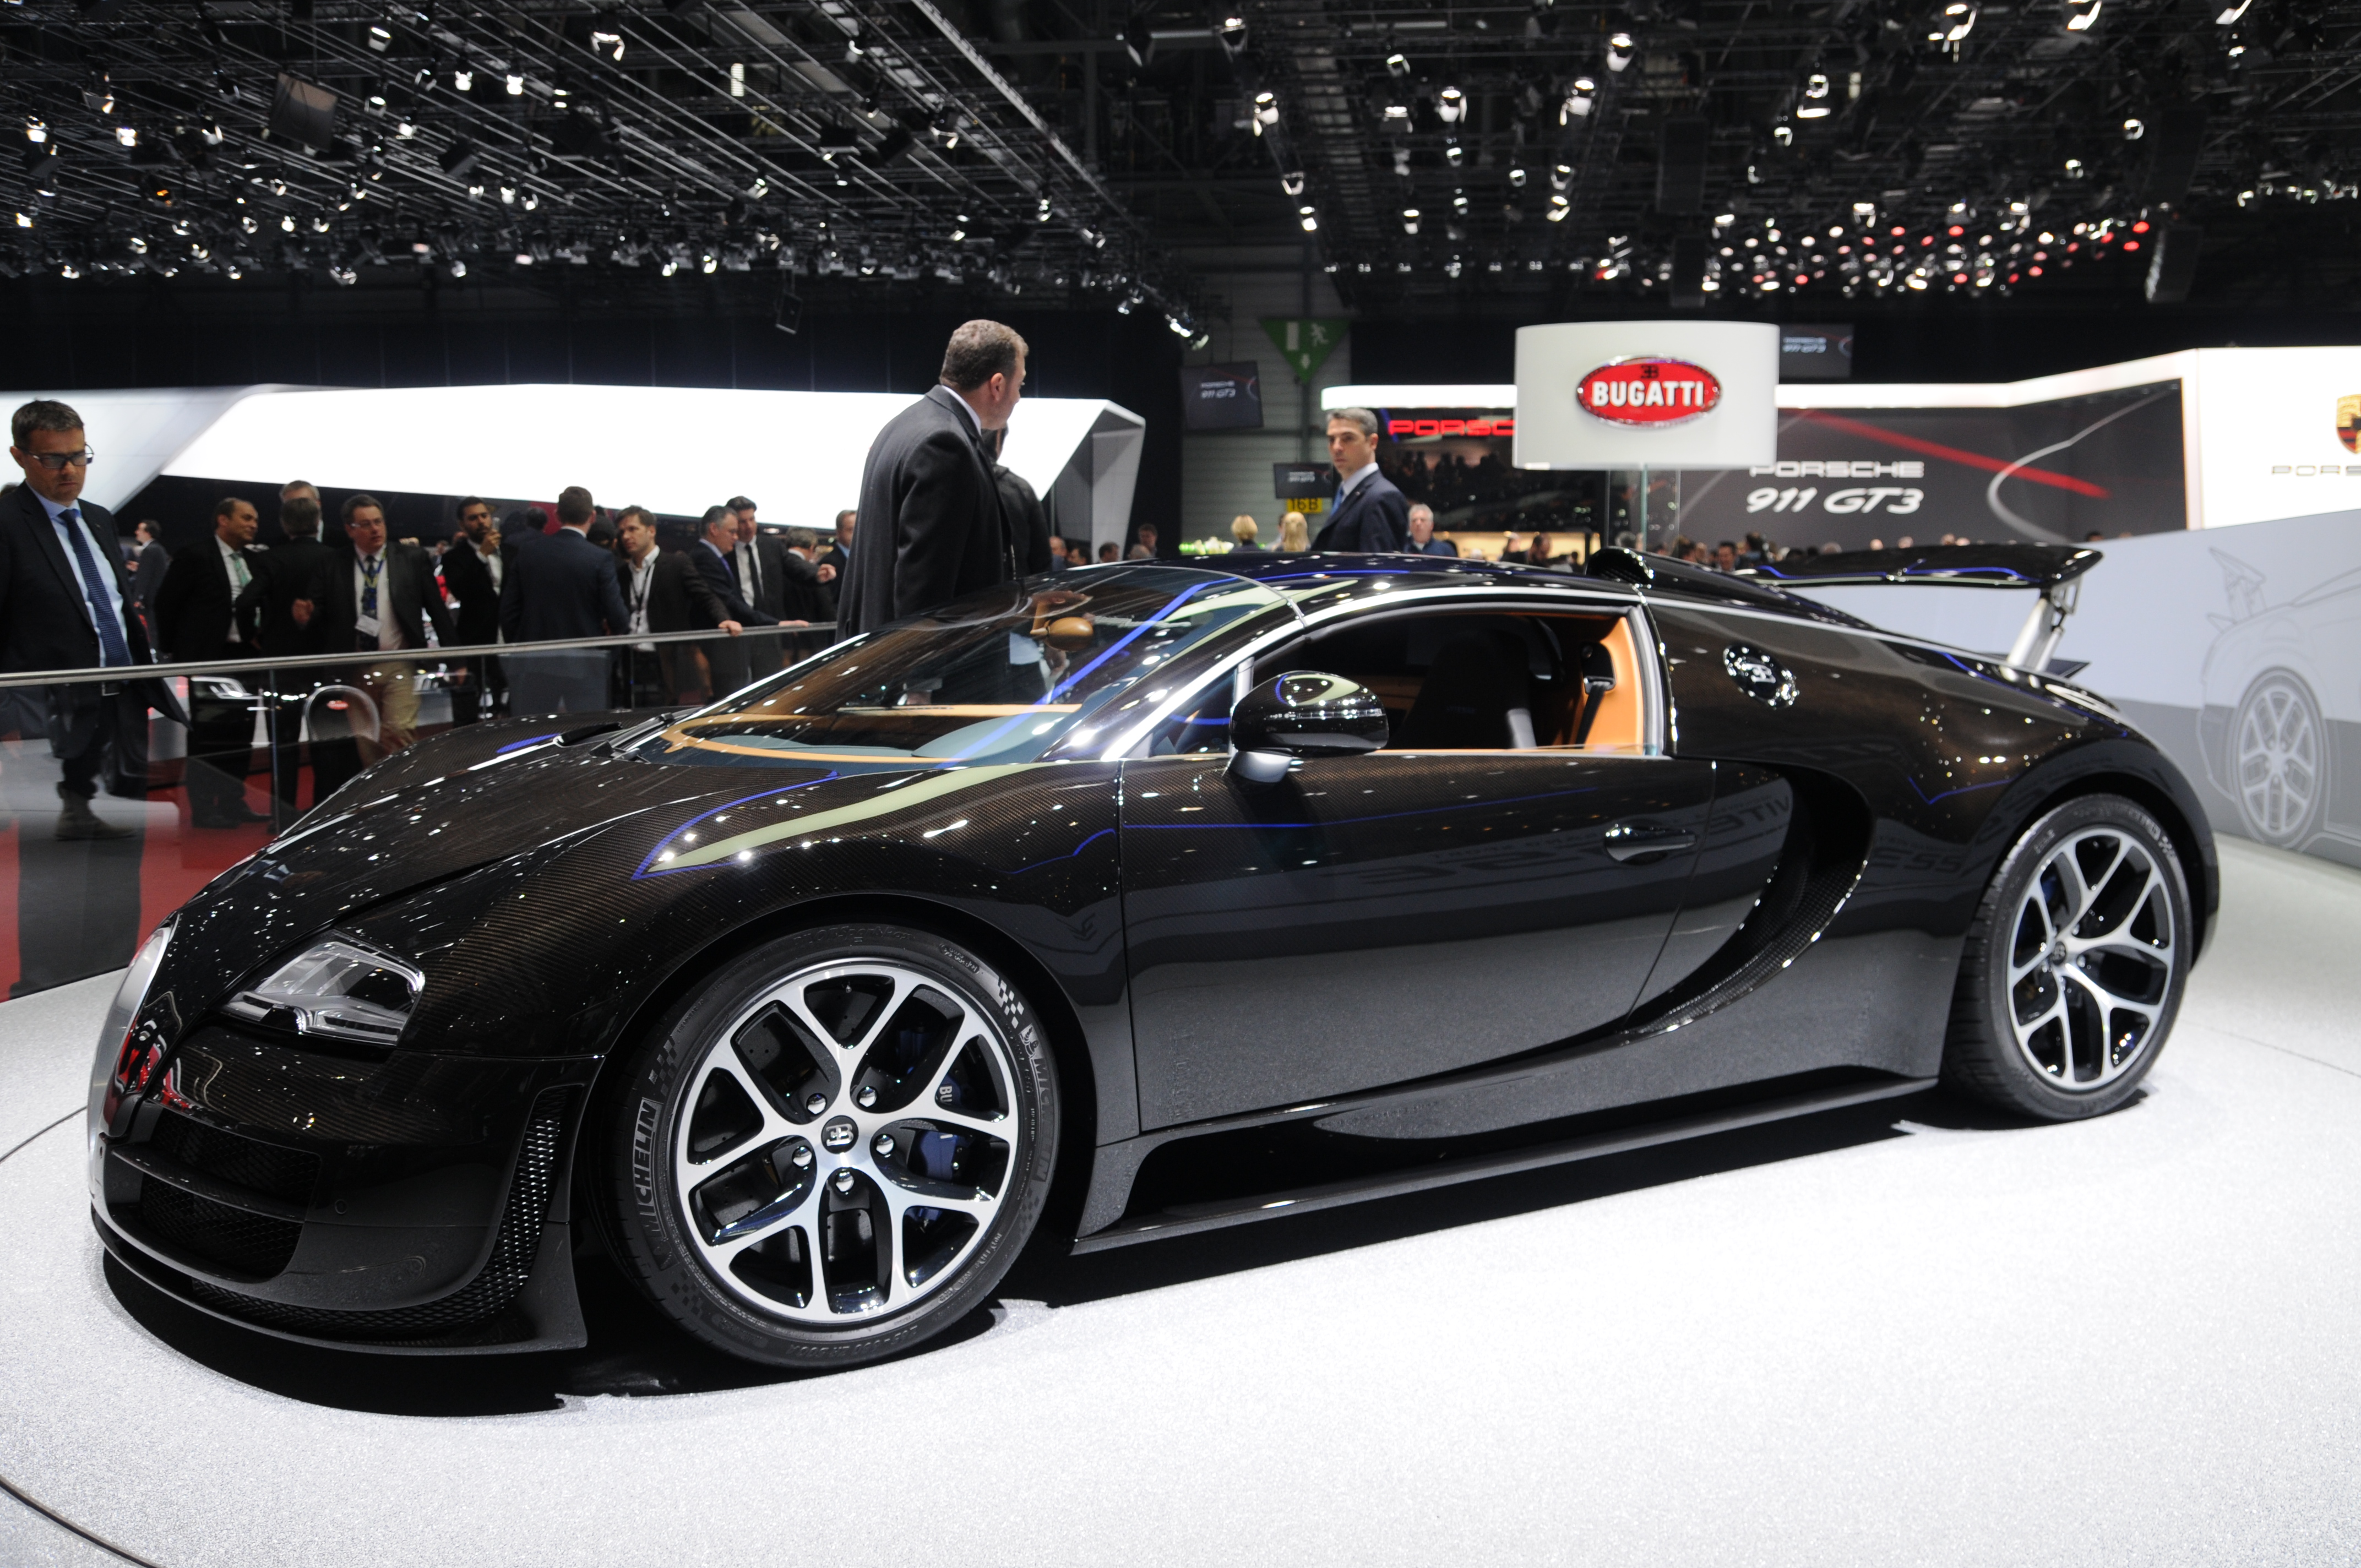 o com n m en vivere y r promoted range diamond cars items a s mansory bugatti edition